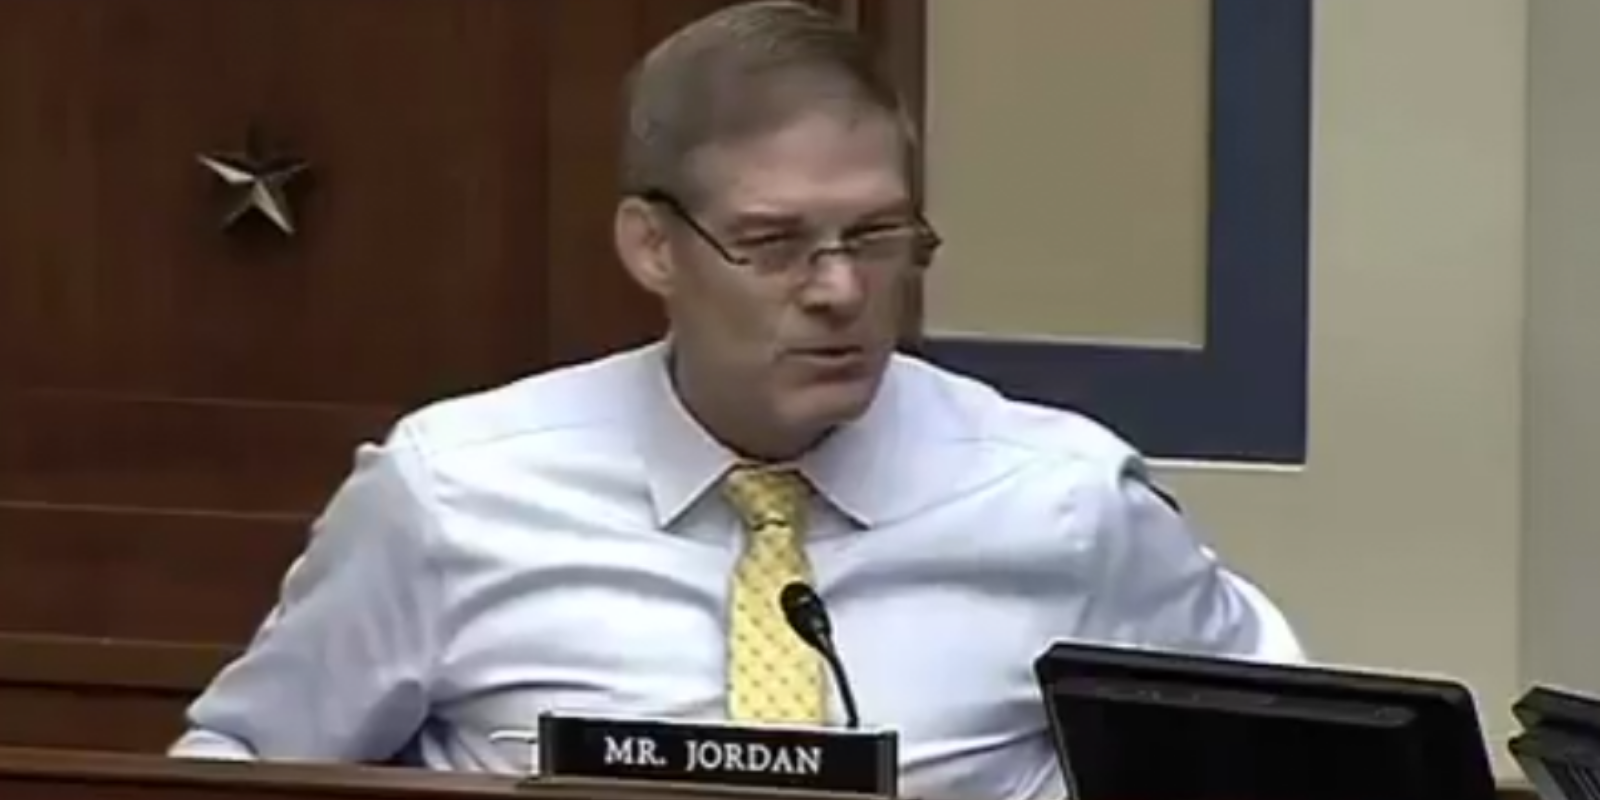 Rep. Jim Jordan speaks for the American people in demanding an investigation into the origins of COVID-19